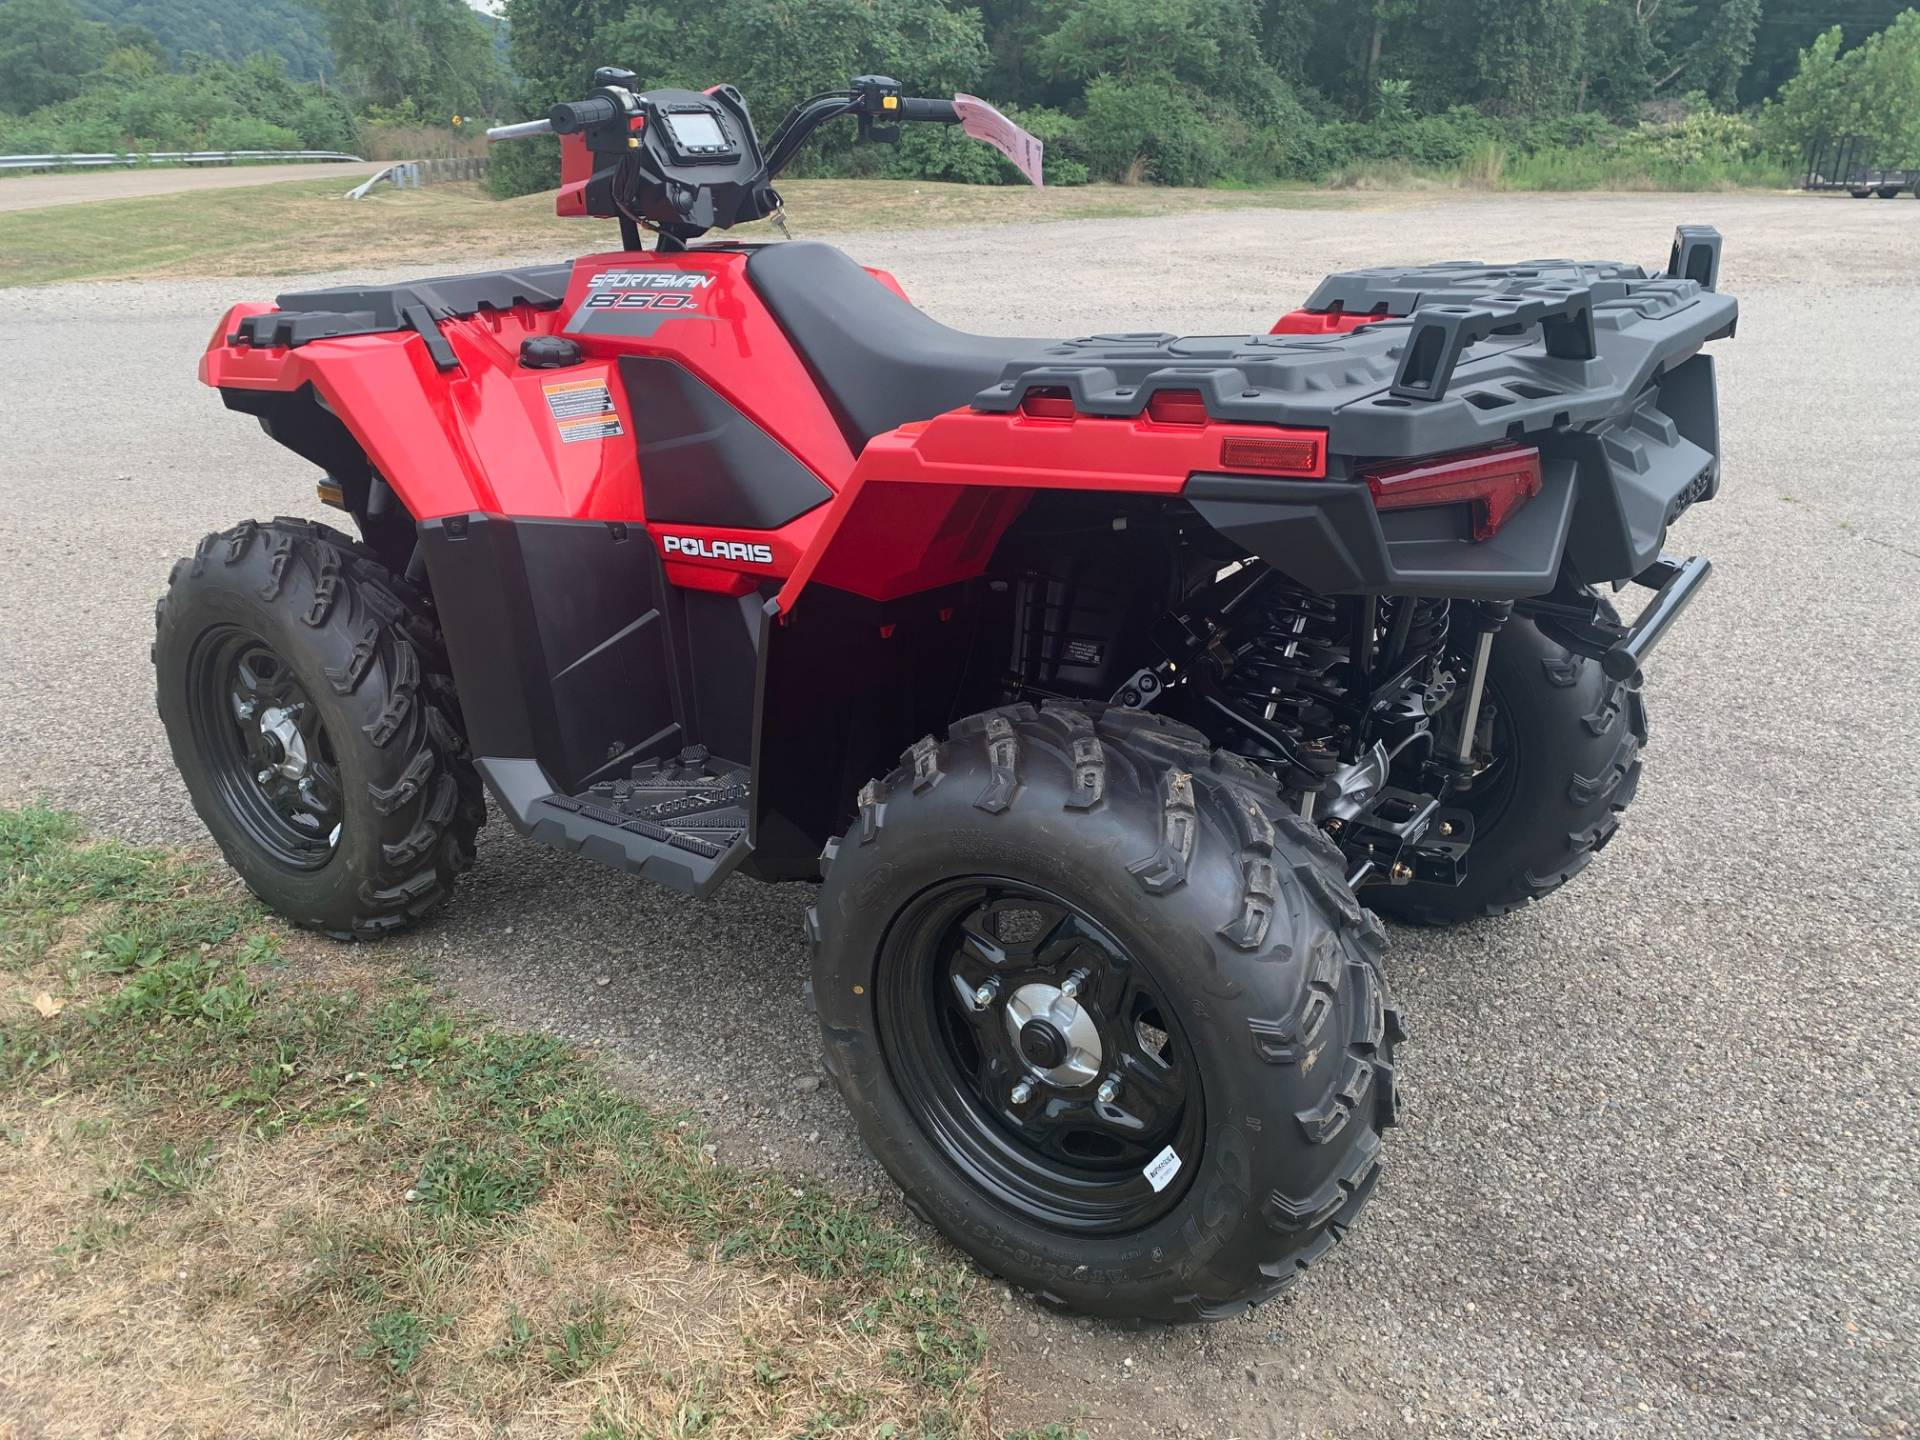 2020 Polaris Sportsman 850 in Brilliant, Ohio - Photo 2